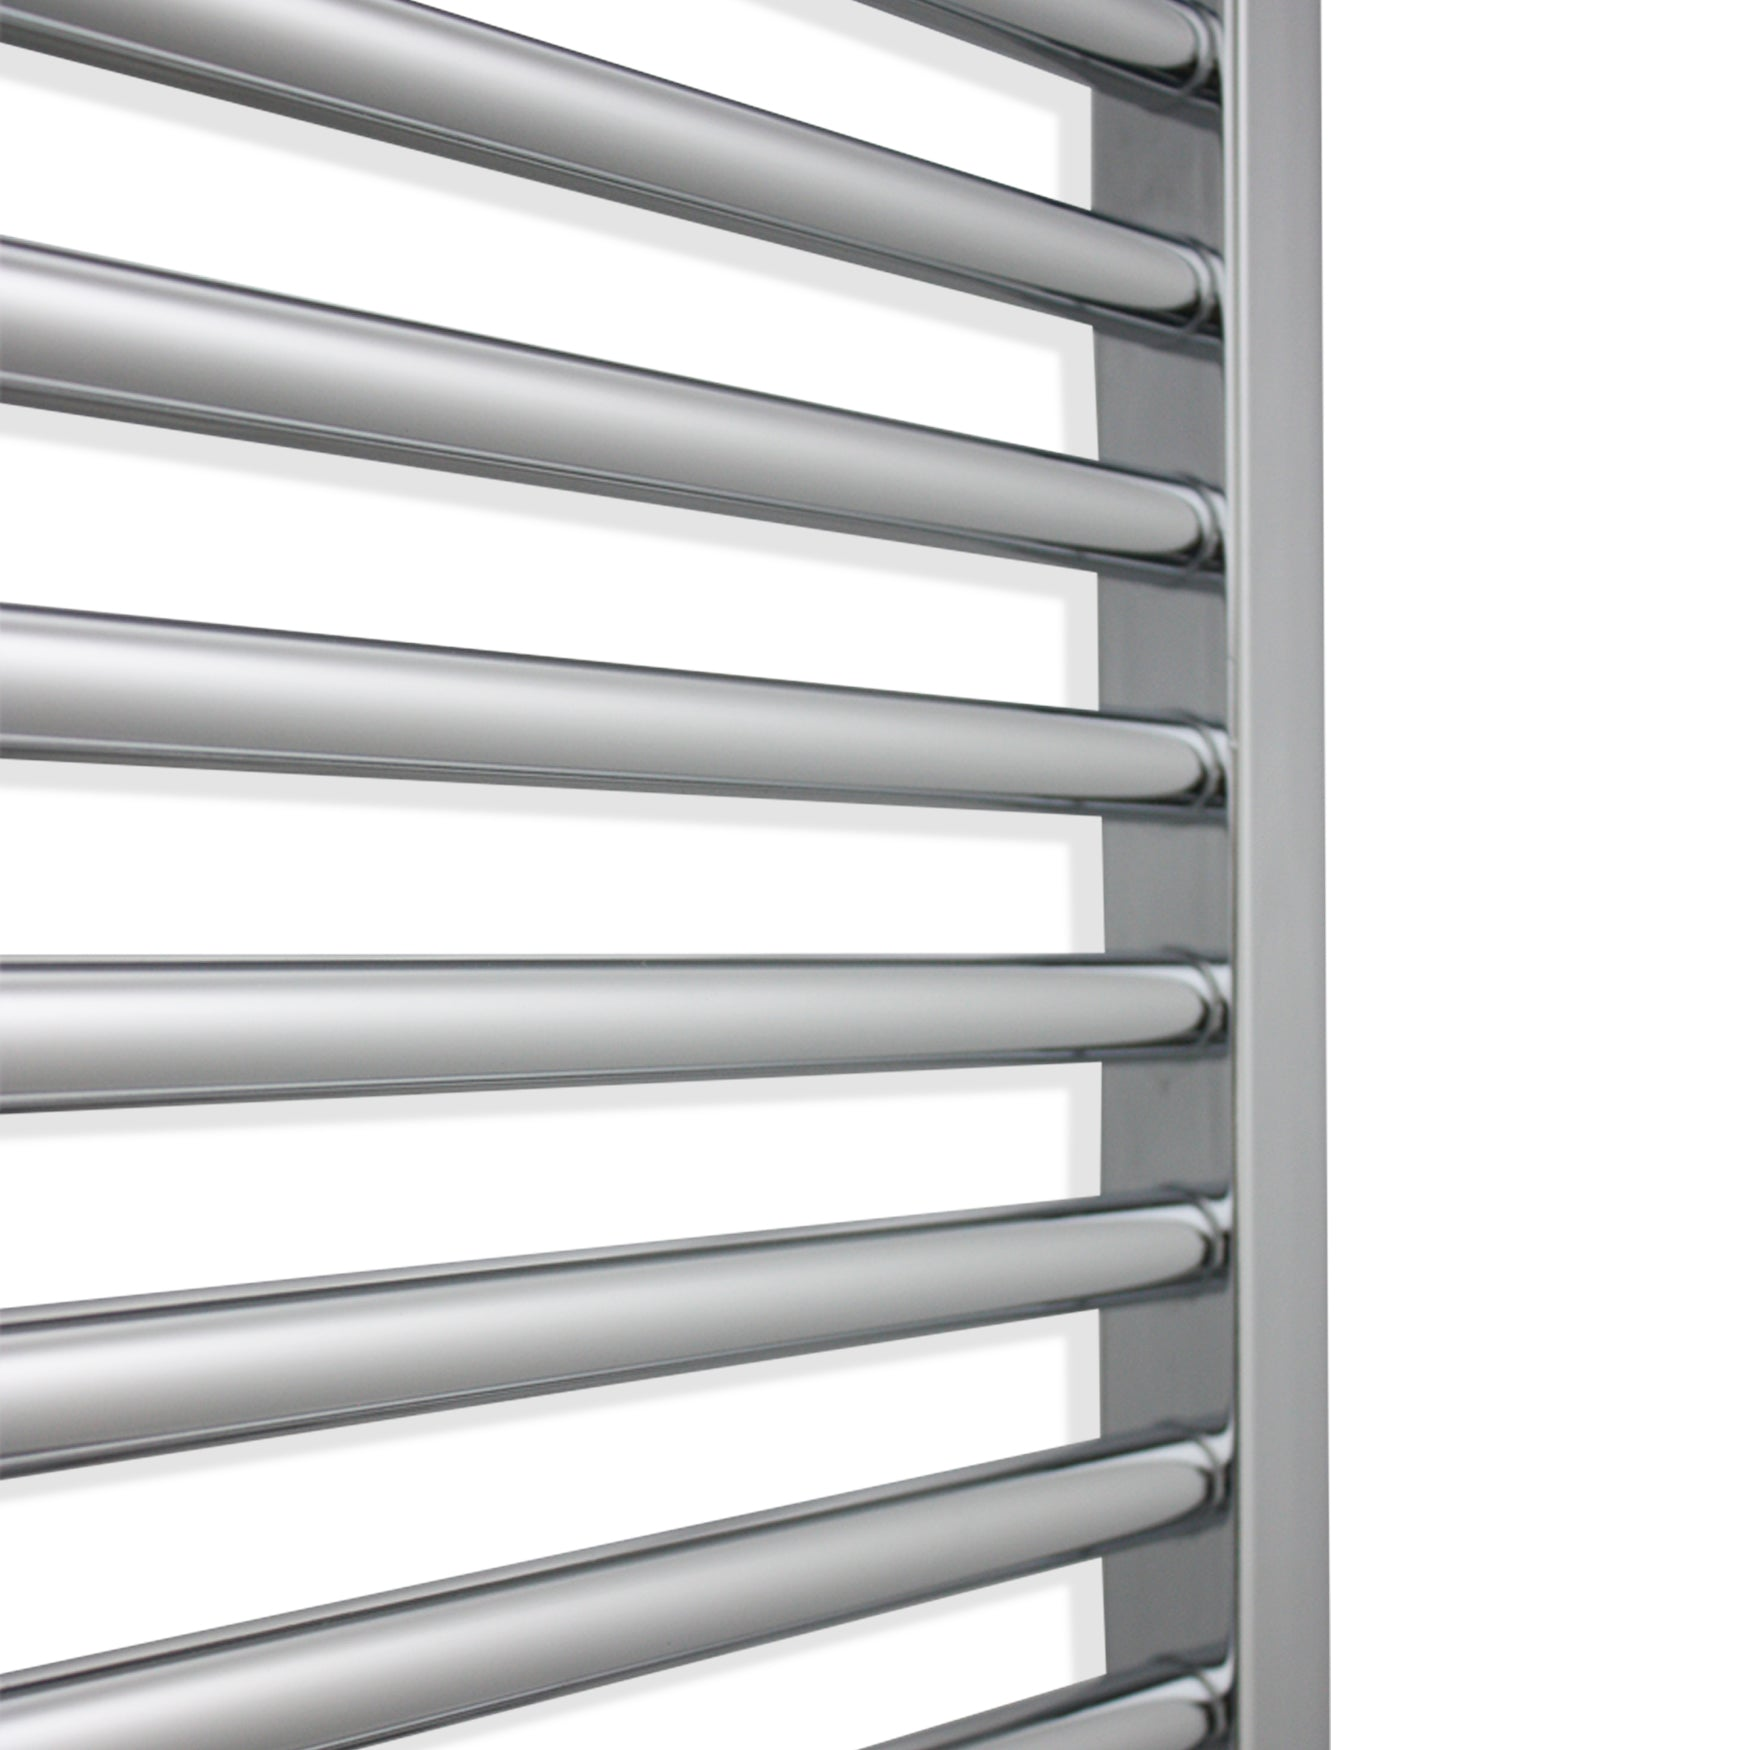 450mm Wide 600mm High Flat Chrome Heated Towel Rail Radiator HTR